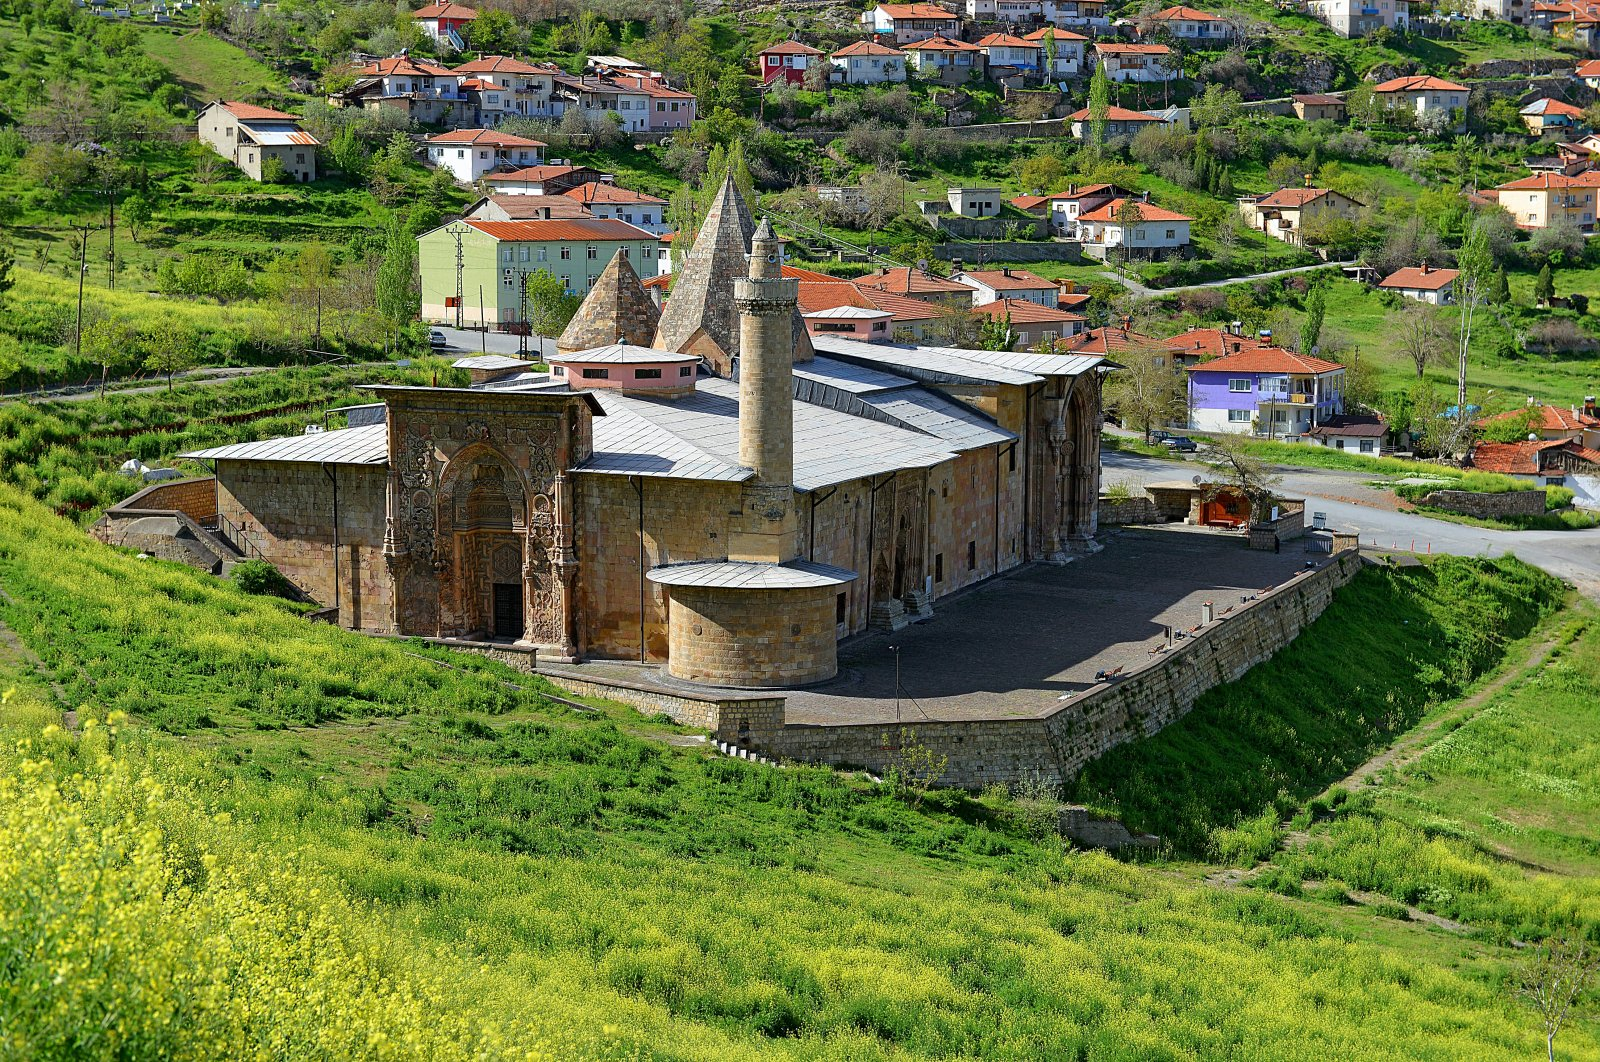 The Great Mosque and Hospital of Divriği, situated in Sivas province in central eastern Turkey, is a remarkable building on the list of UNESCO World Heritage Sites.  (PHOTO BY MUSTAFA CAMBAZ)